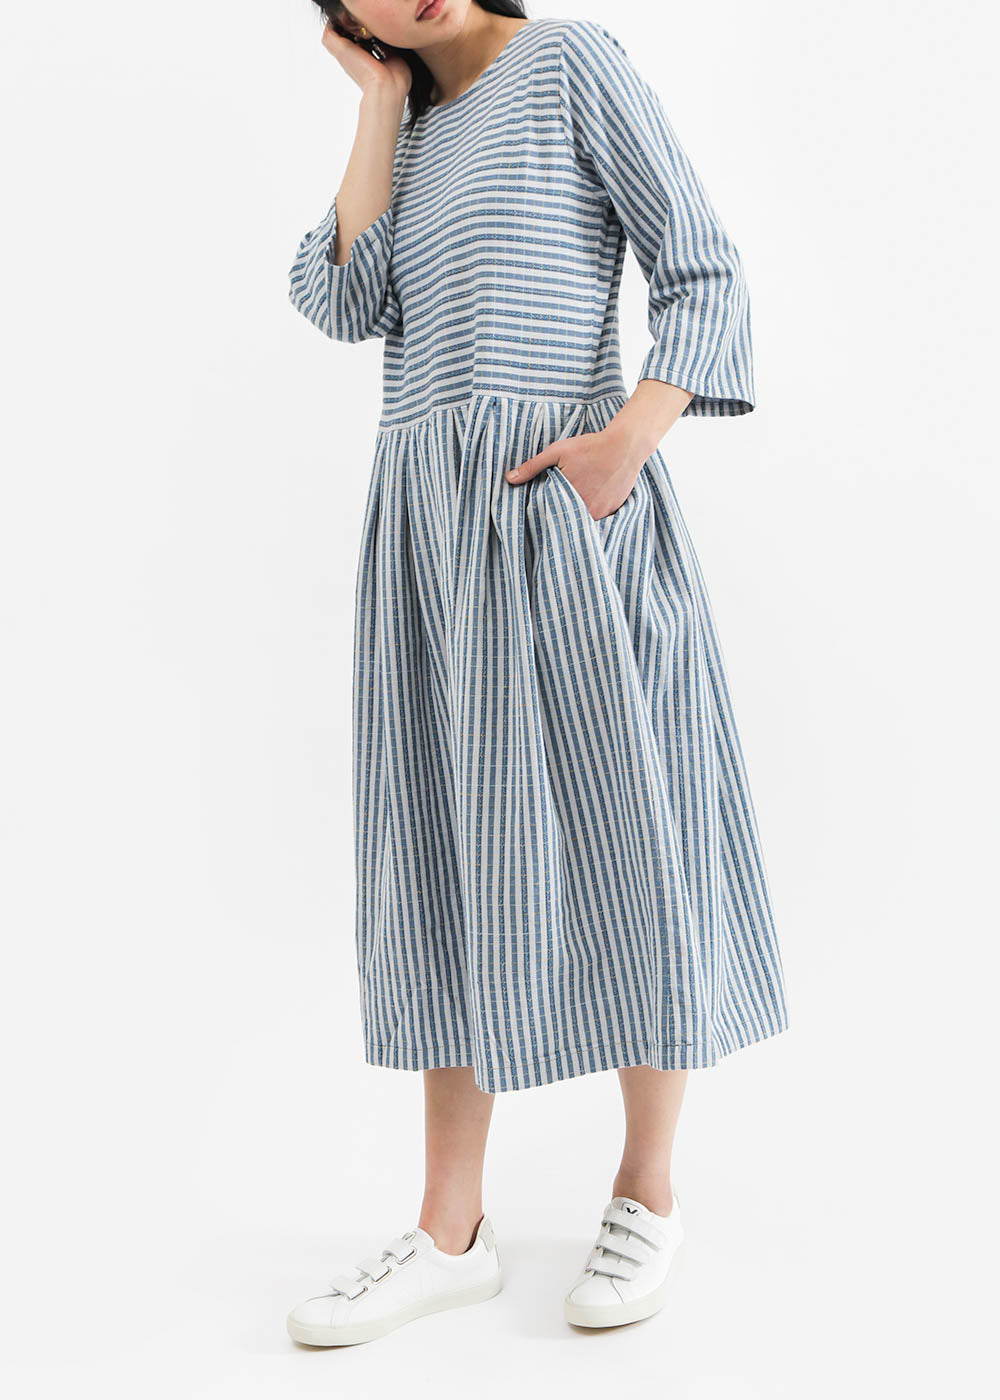 Ace & Jig Starboard Sage Dress — New Classics Studios